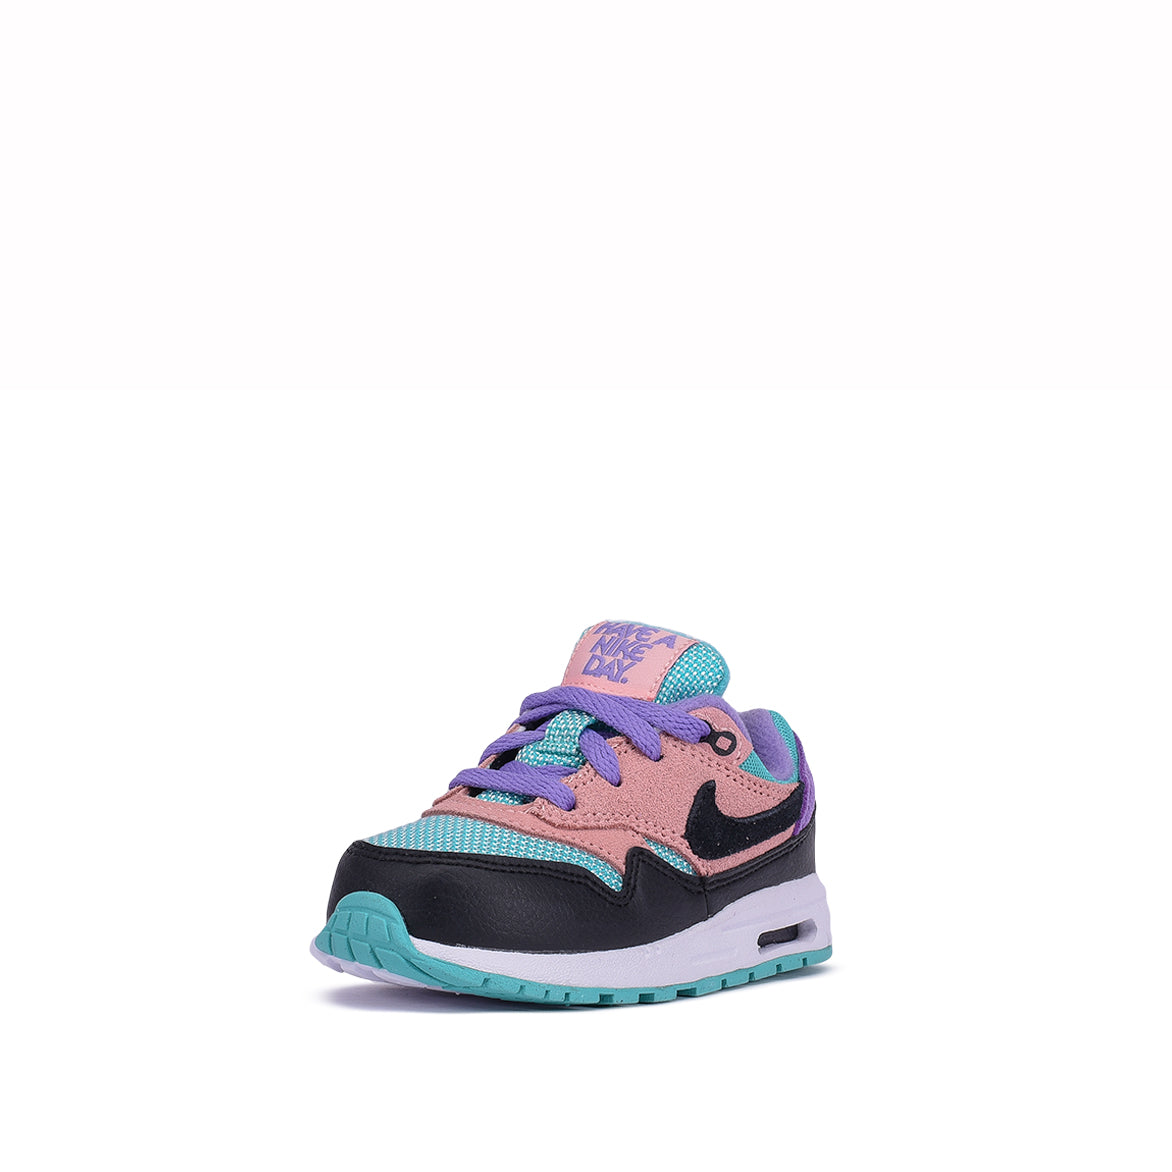 "AIR MAX 1 (TD) ""HAVE A NIKE DAY"" - SPACE PURPLE"